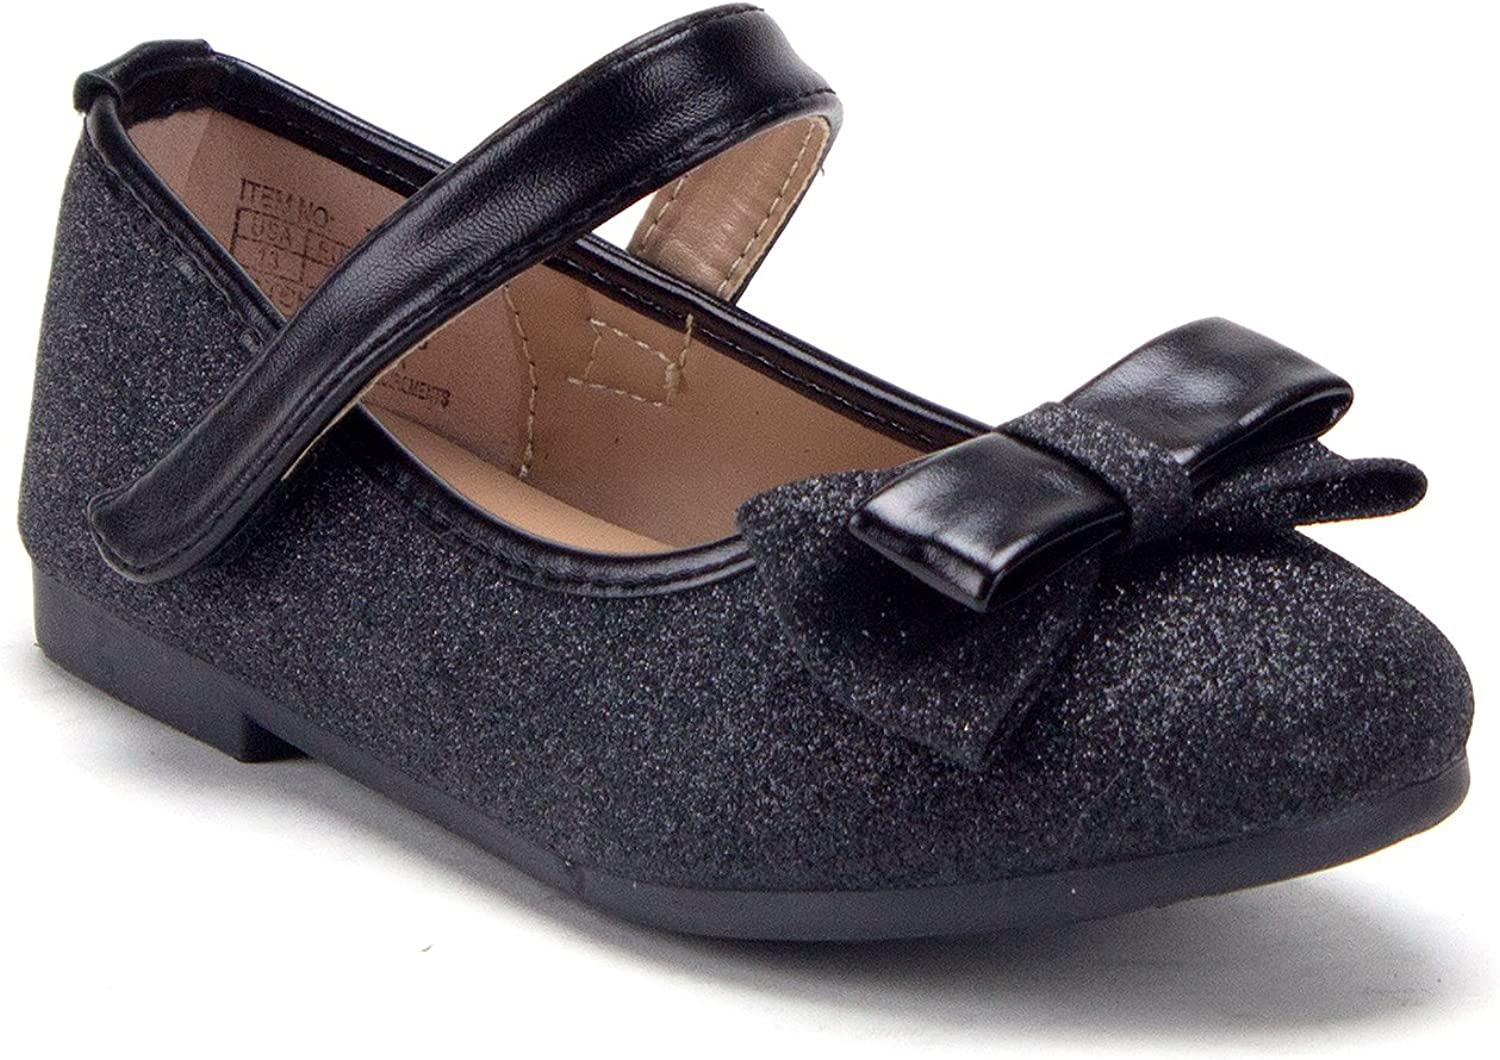 Fort Worth Mall Toddler Little Ranking TOP3 Girls Mary Jane Glitter Flats Ballerina Wh Shoes